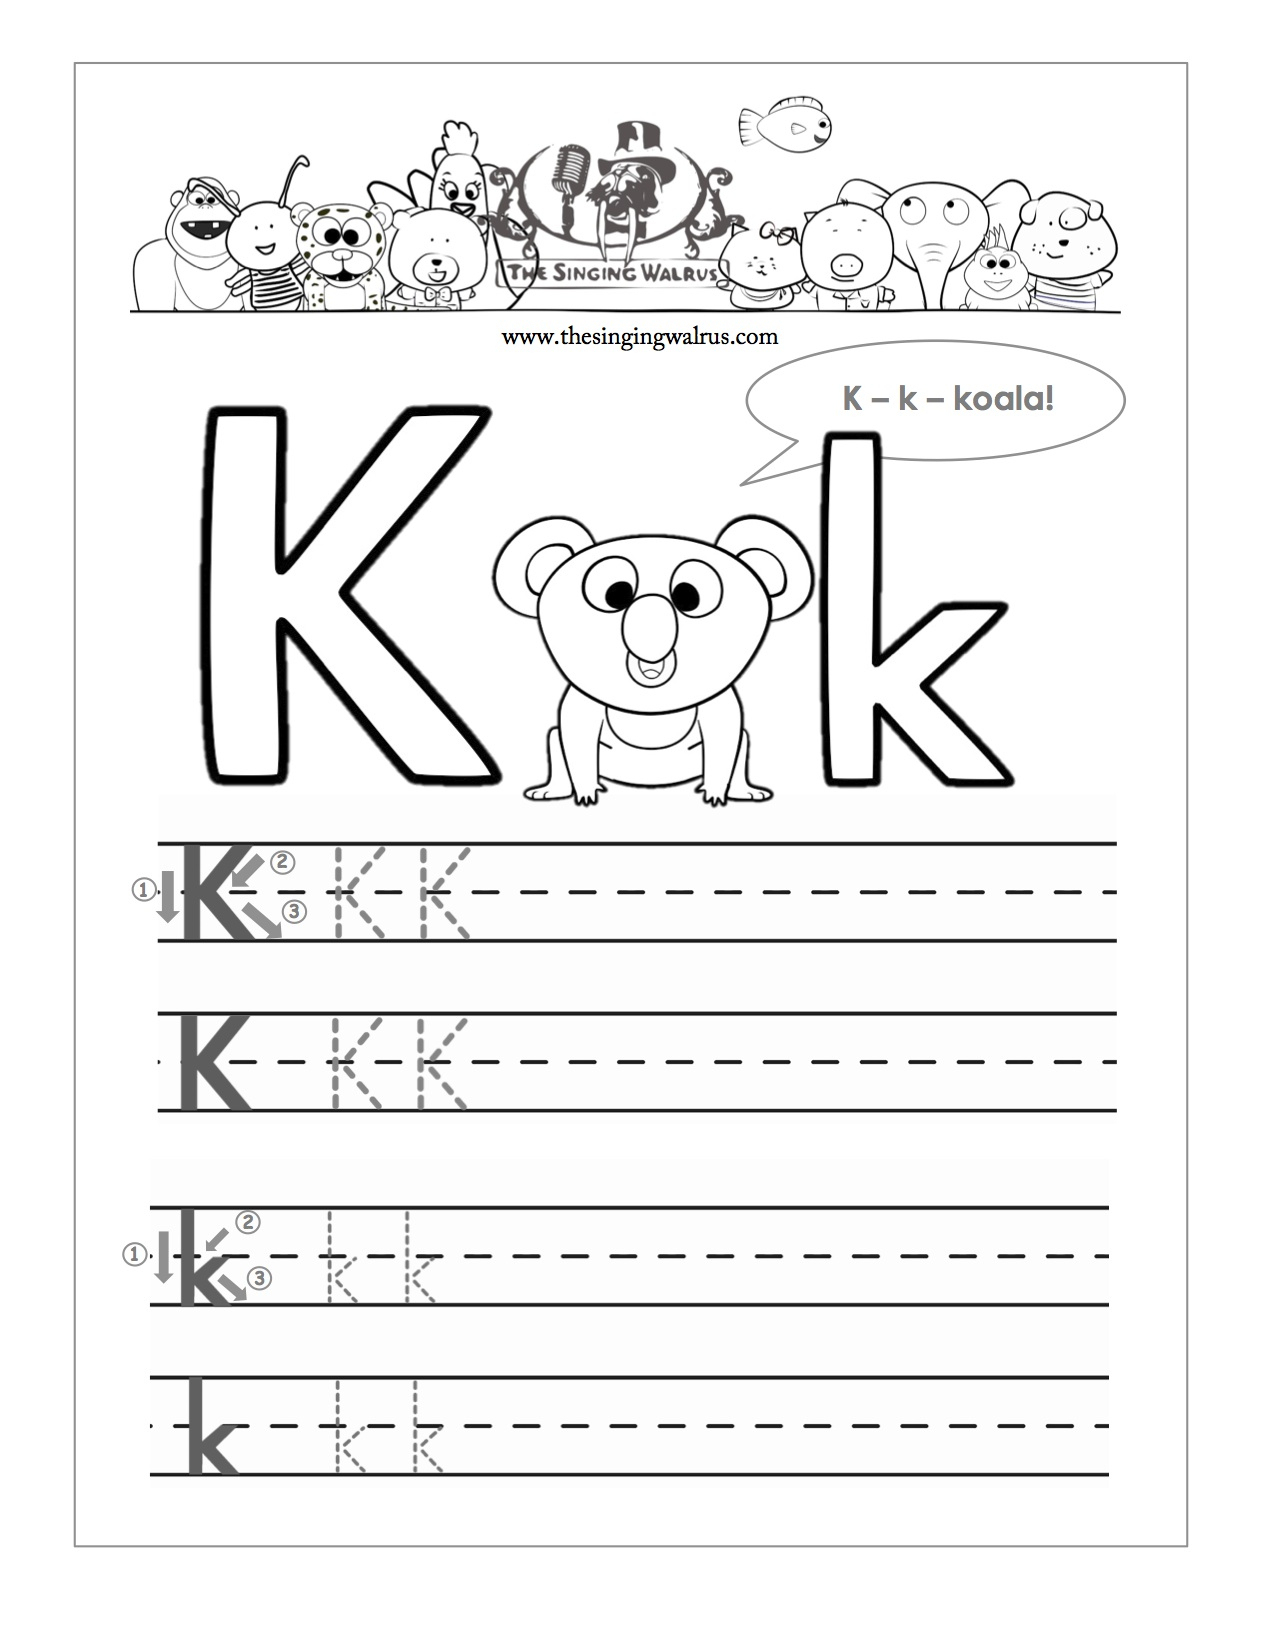 15 Learning The Letter K Worksheets | Kittybabylove | Letter K Worksheets Printable